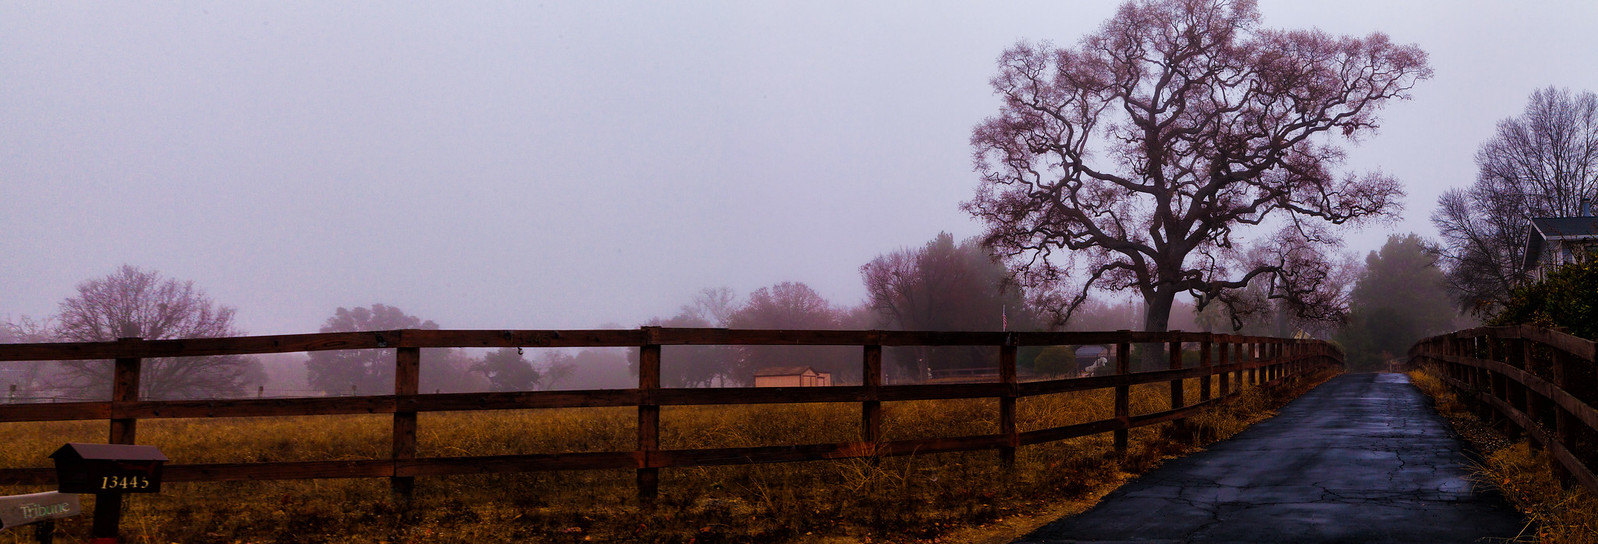 The Road in the Fog